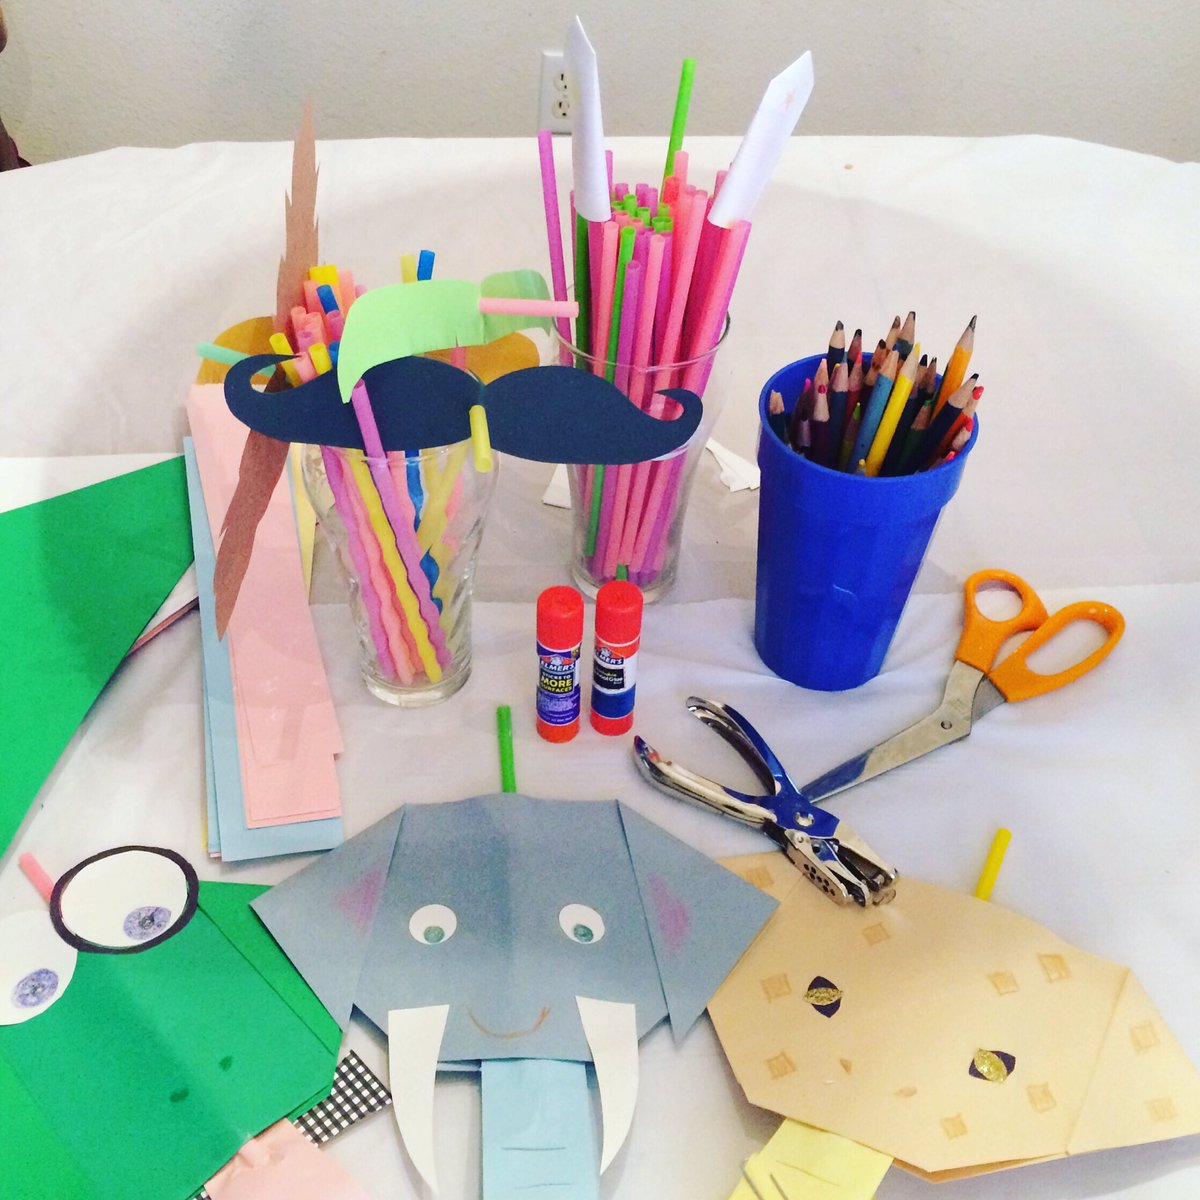 #facebooklive today @ 2:30 pm CST: #humorwithheart — Last Straw Laughter! We'll explore 3 giggle-worthy ways to creatively #repurpose those plastic straws. #recycle #moustache #rockets #animalcrafts #nonprofit #austintx #everyoneiscreative